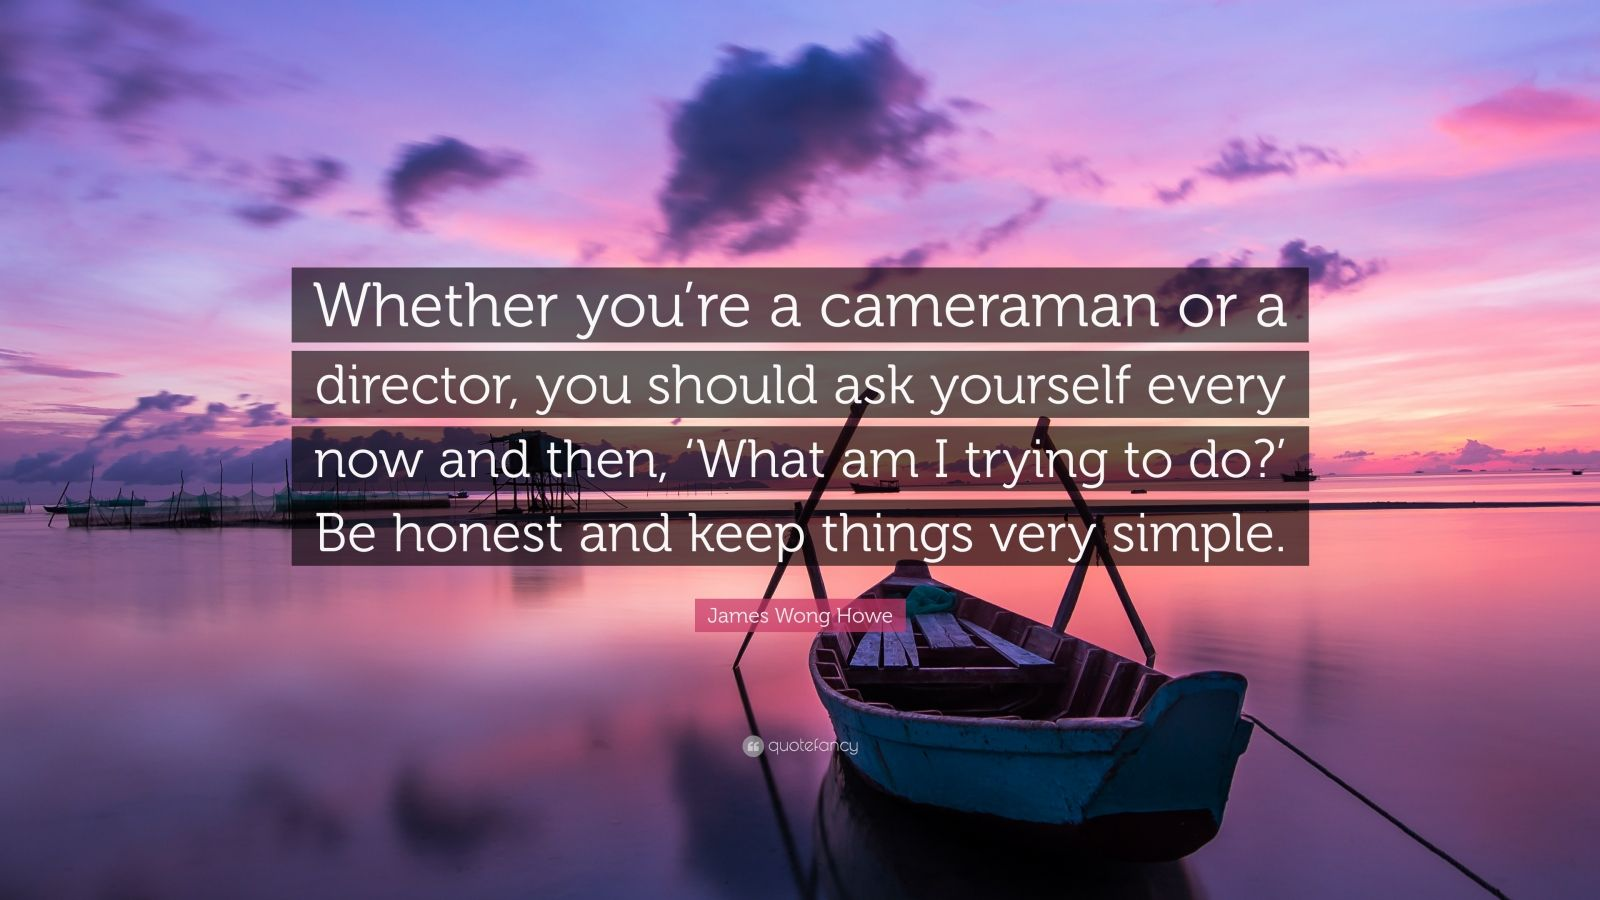 "James Wong Howe Quote: ""Whether you're a cameraman or a director, you should ask yourself every now and then, 'What am I trying to do?' Be honest and keep things very simple."""